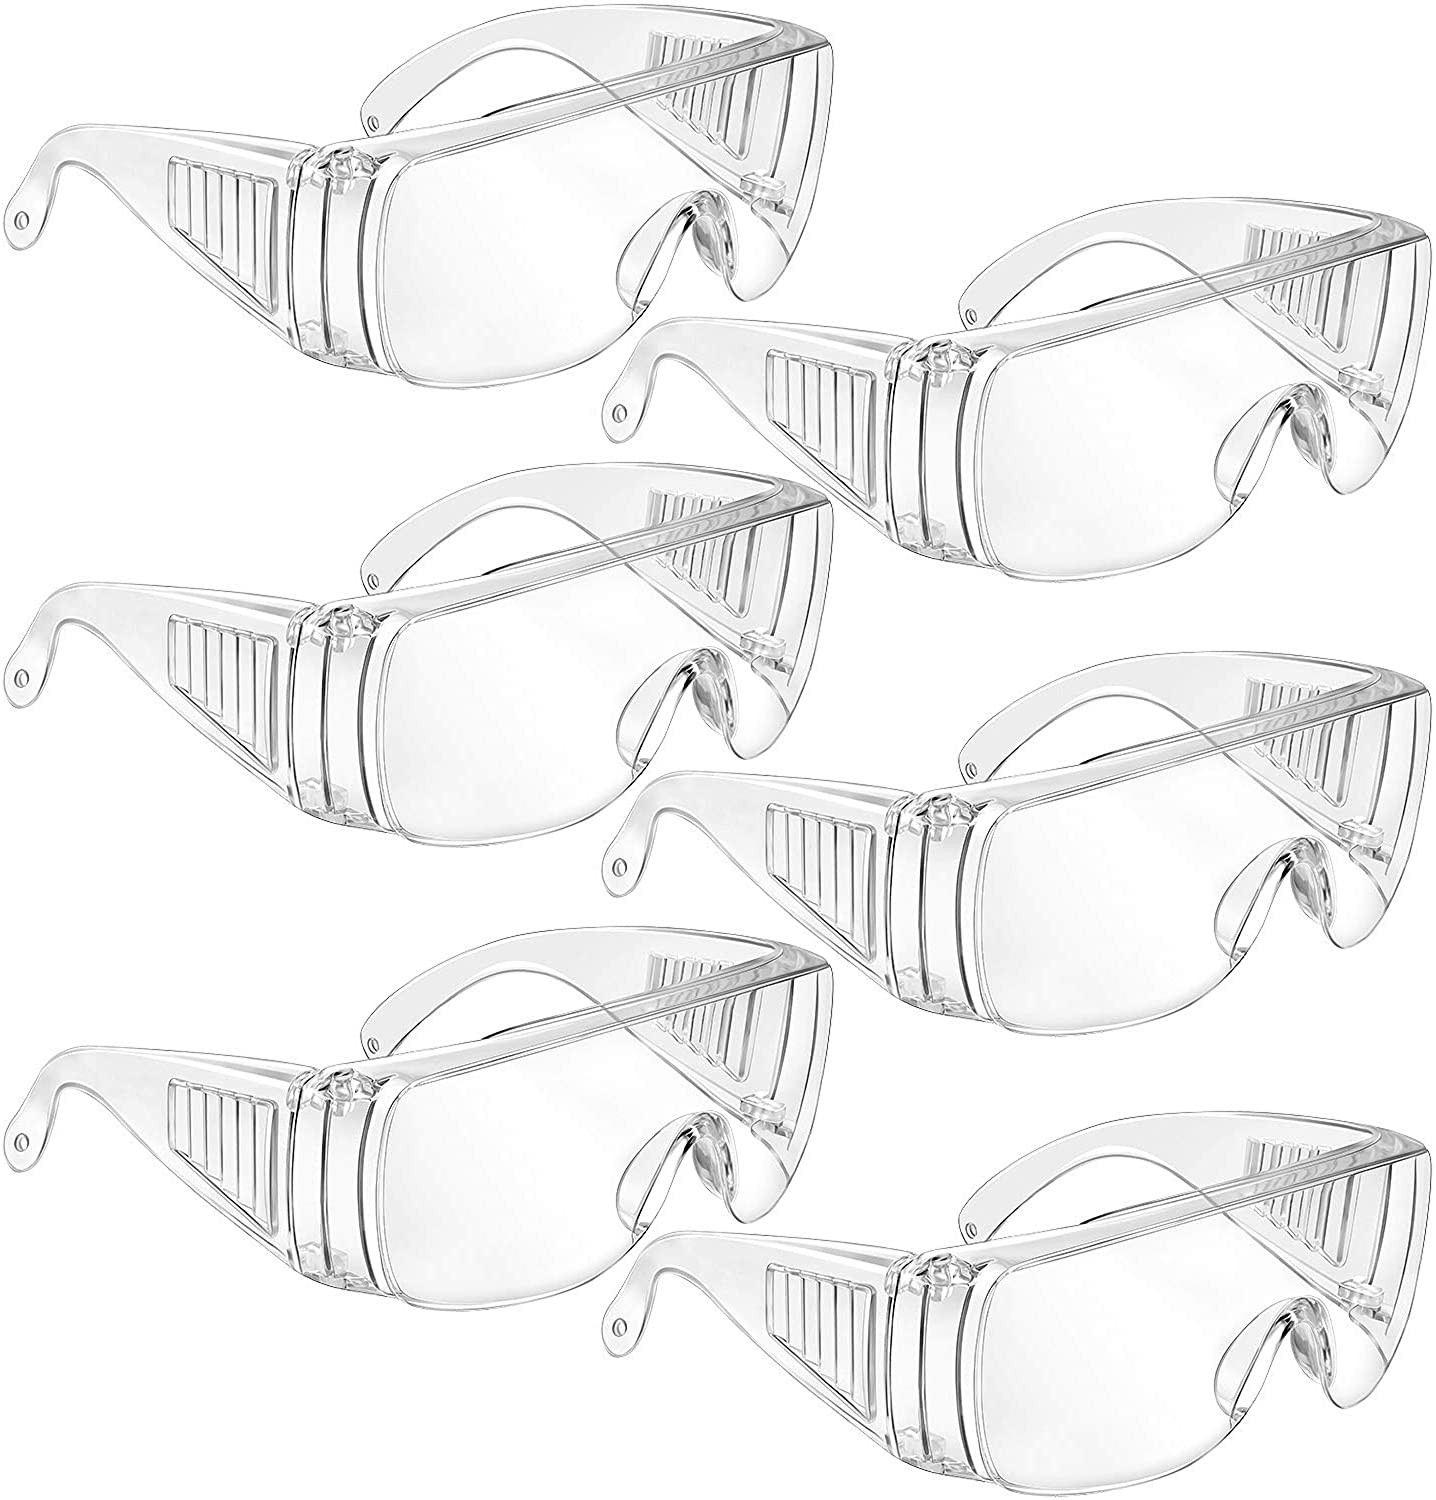 6 Pairs Clear Safety Glasses Over Our shop OFFers the best service Scr fog Limited time sale Anti- Goggles